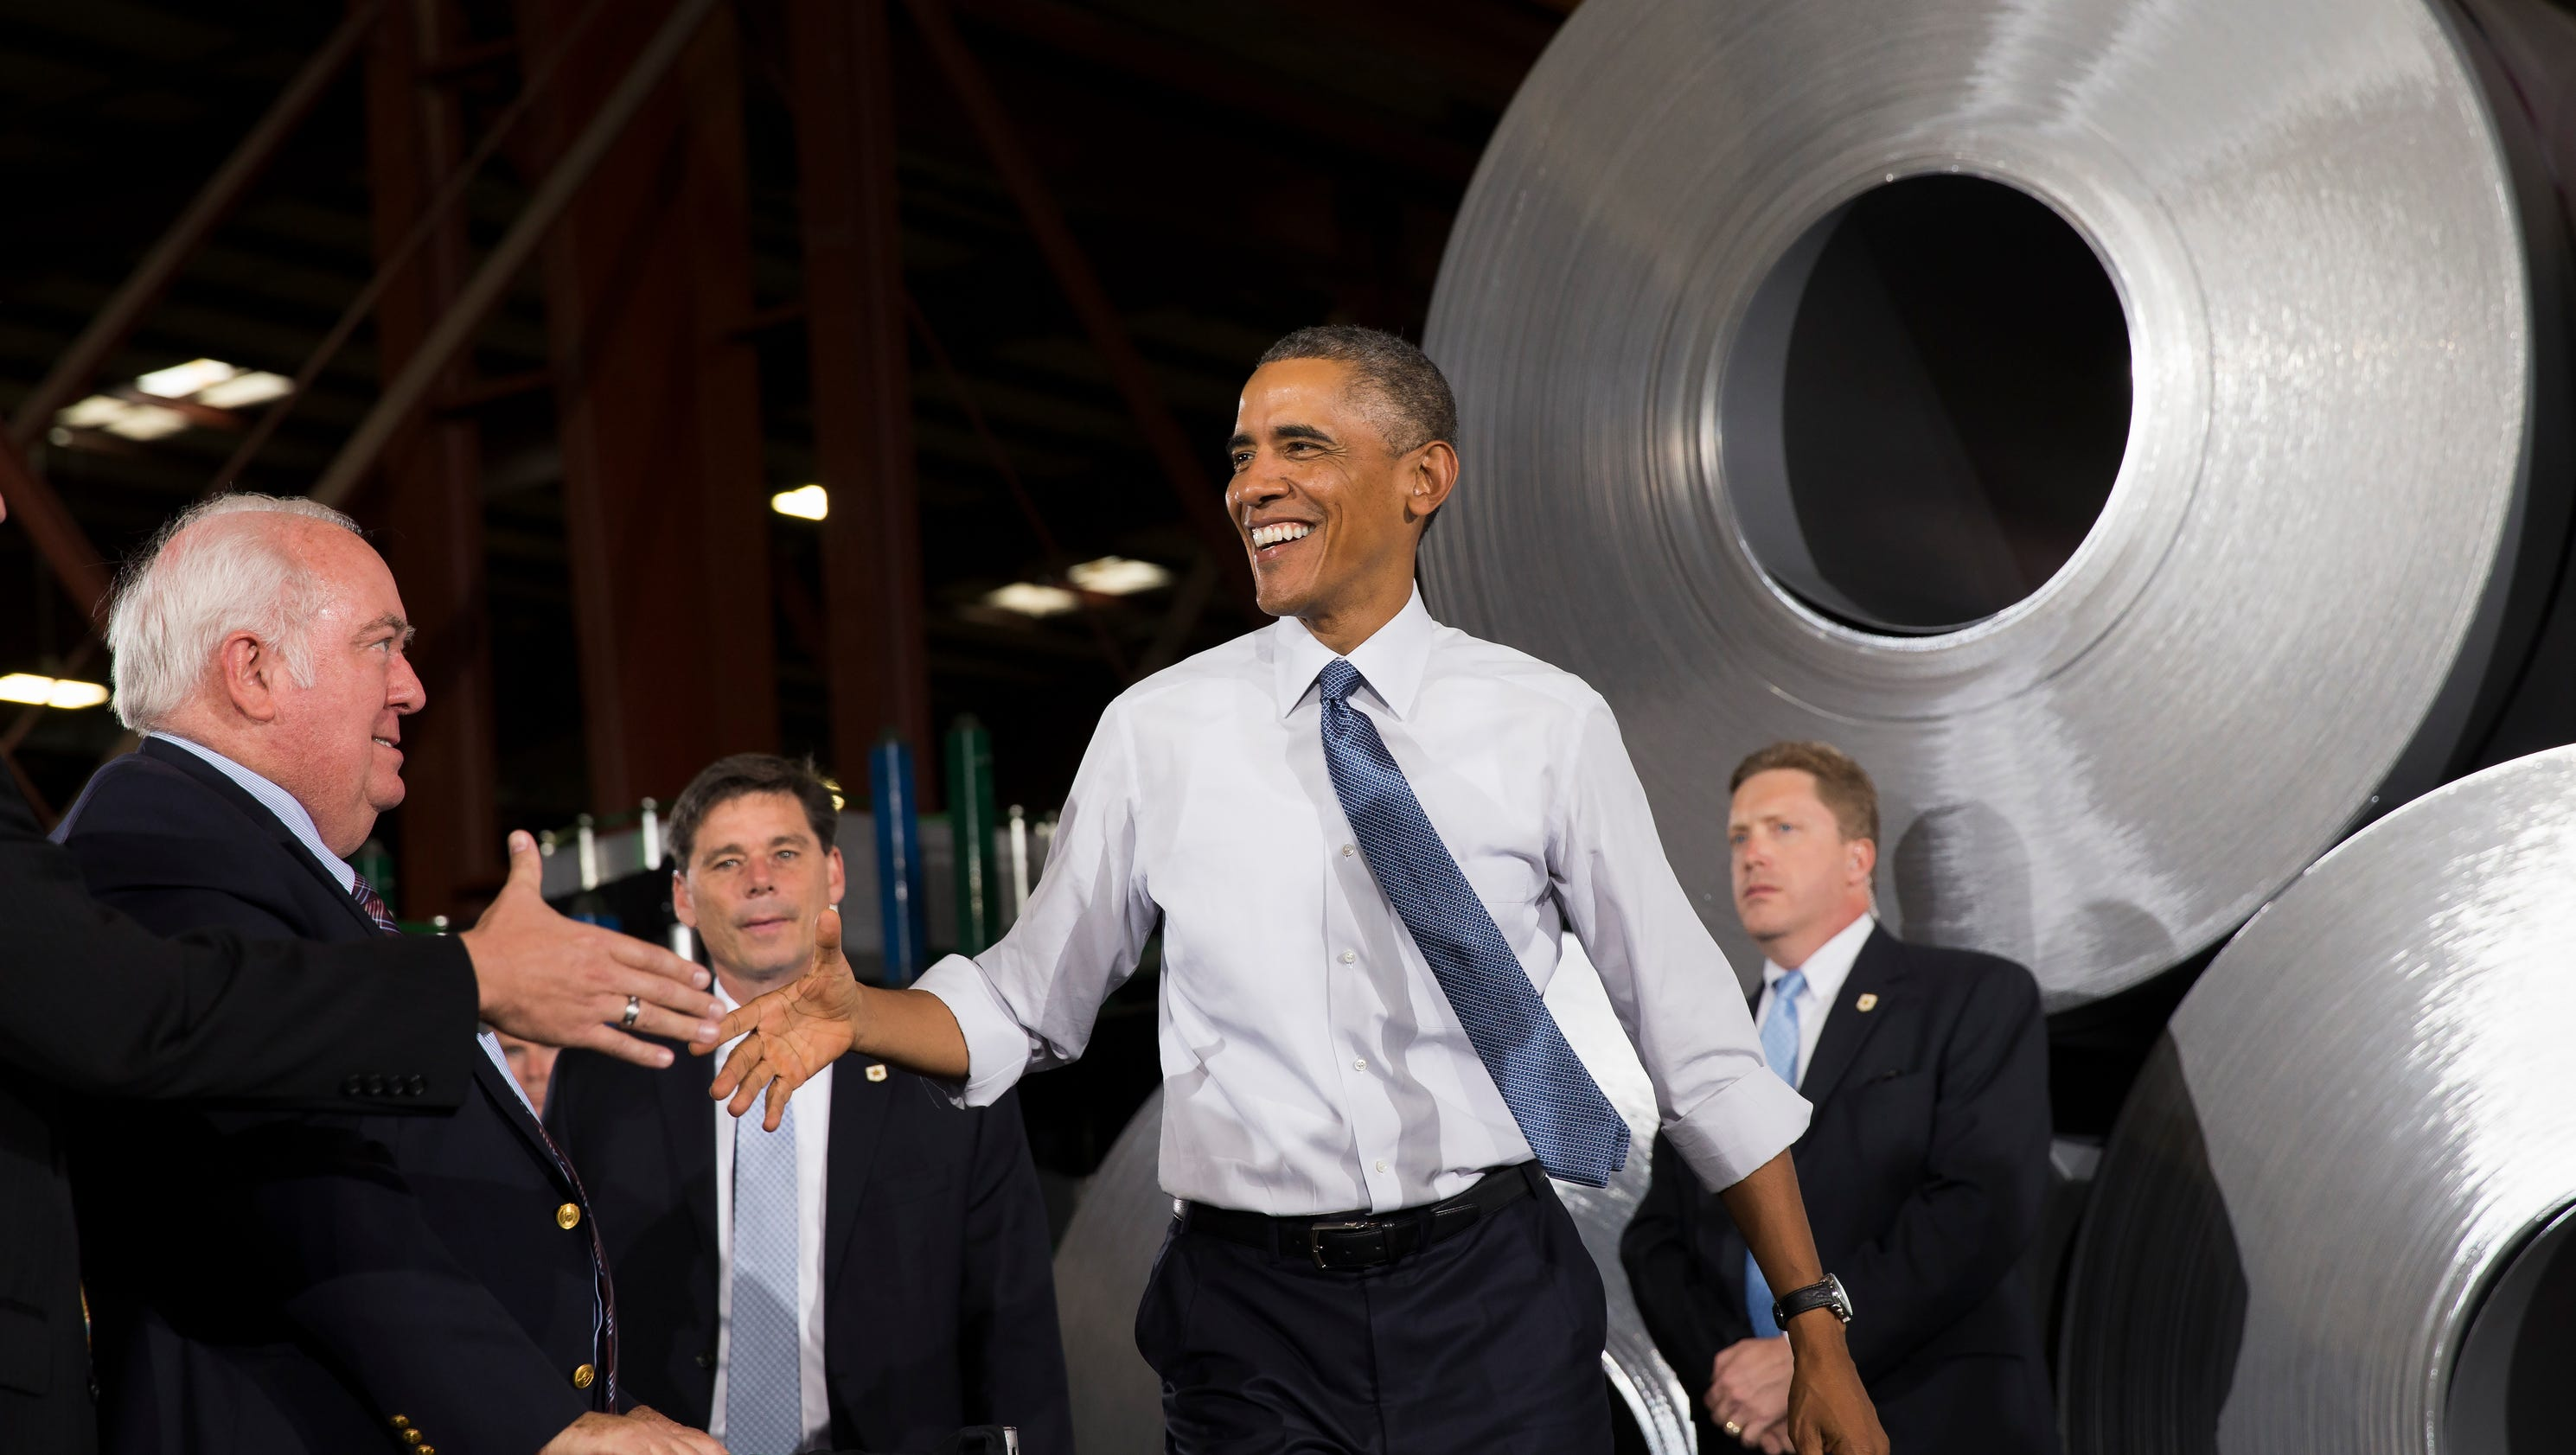 why is obama a good president President obama inherited the white house under rough economic  circumstances during the great recession that took place between 2007-2009,  many.